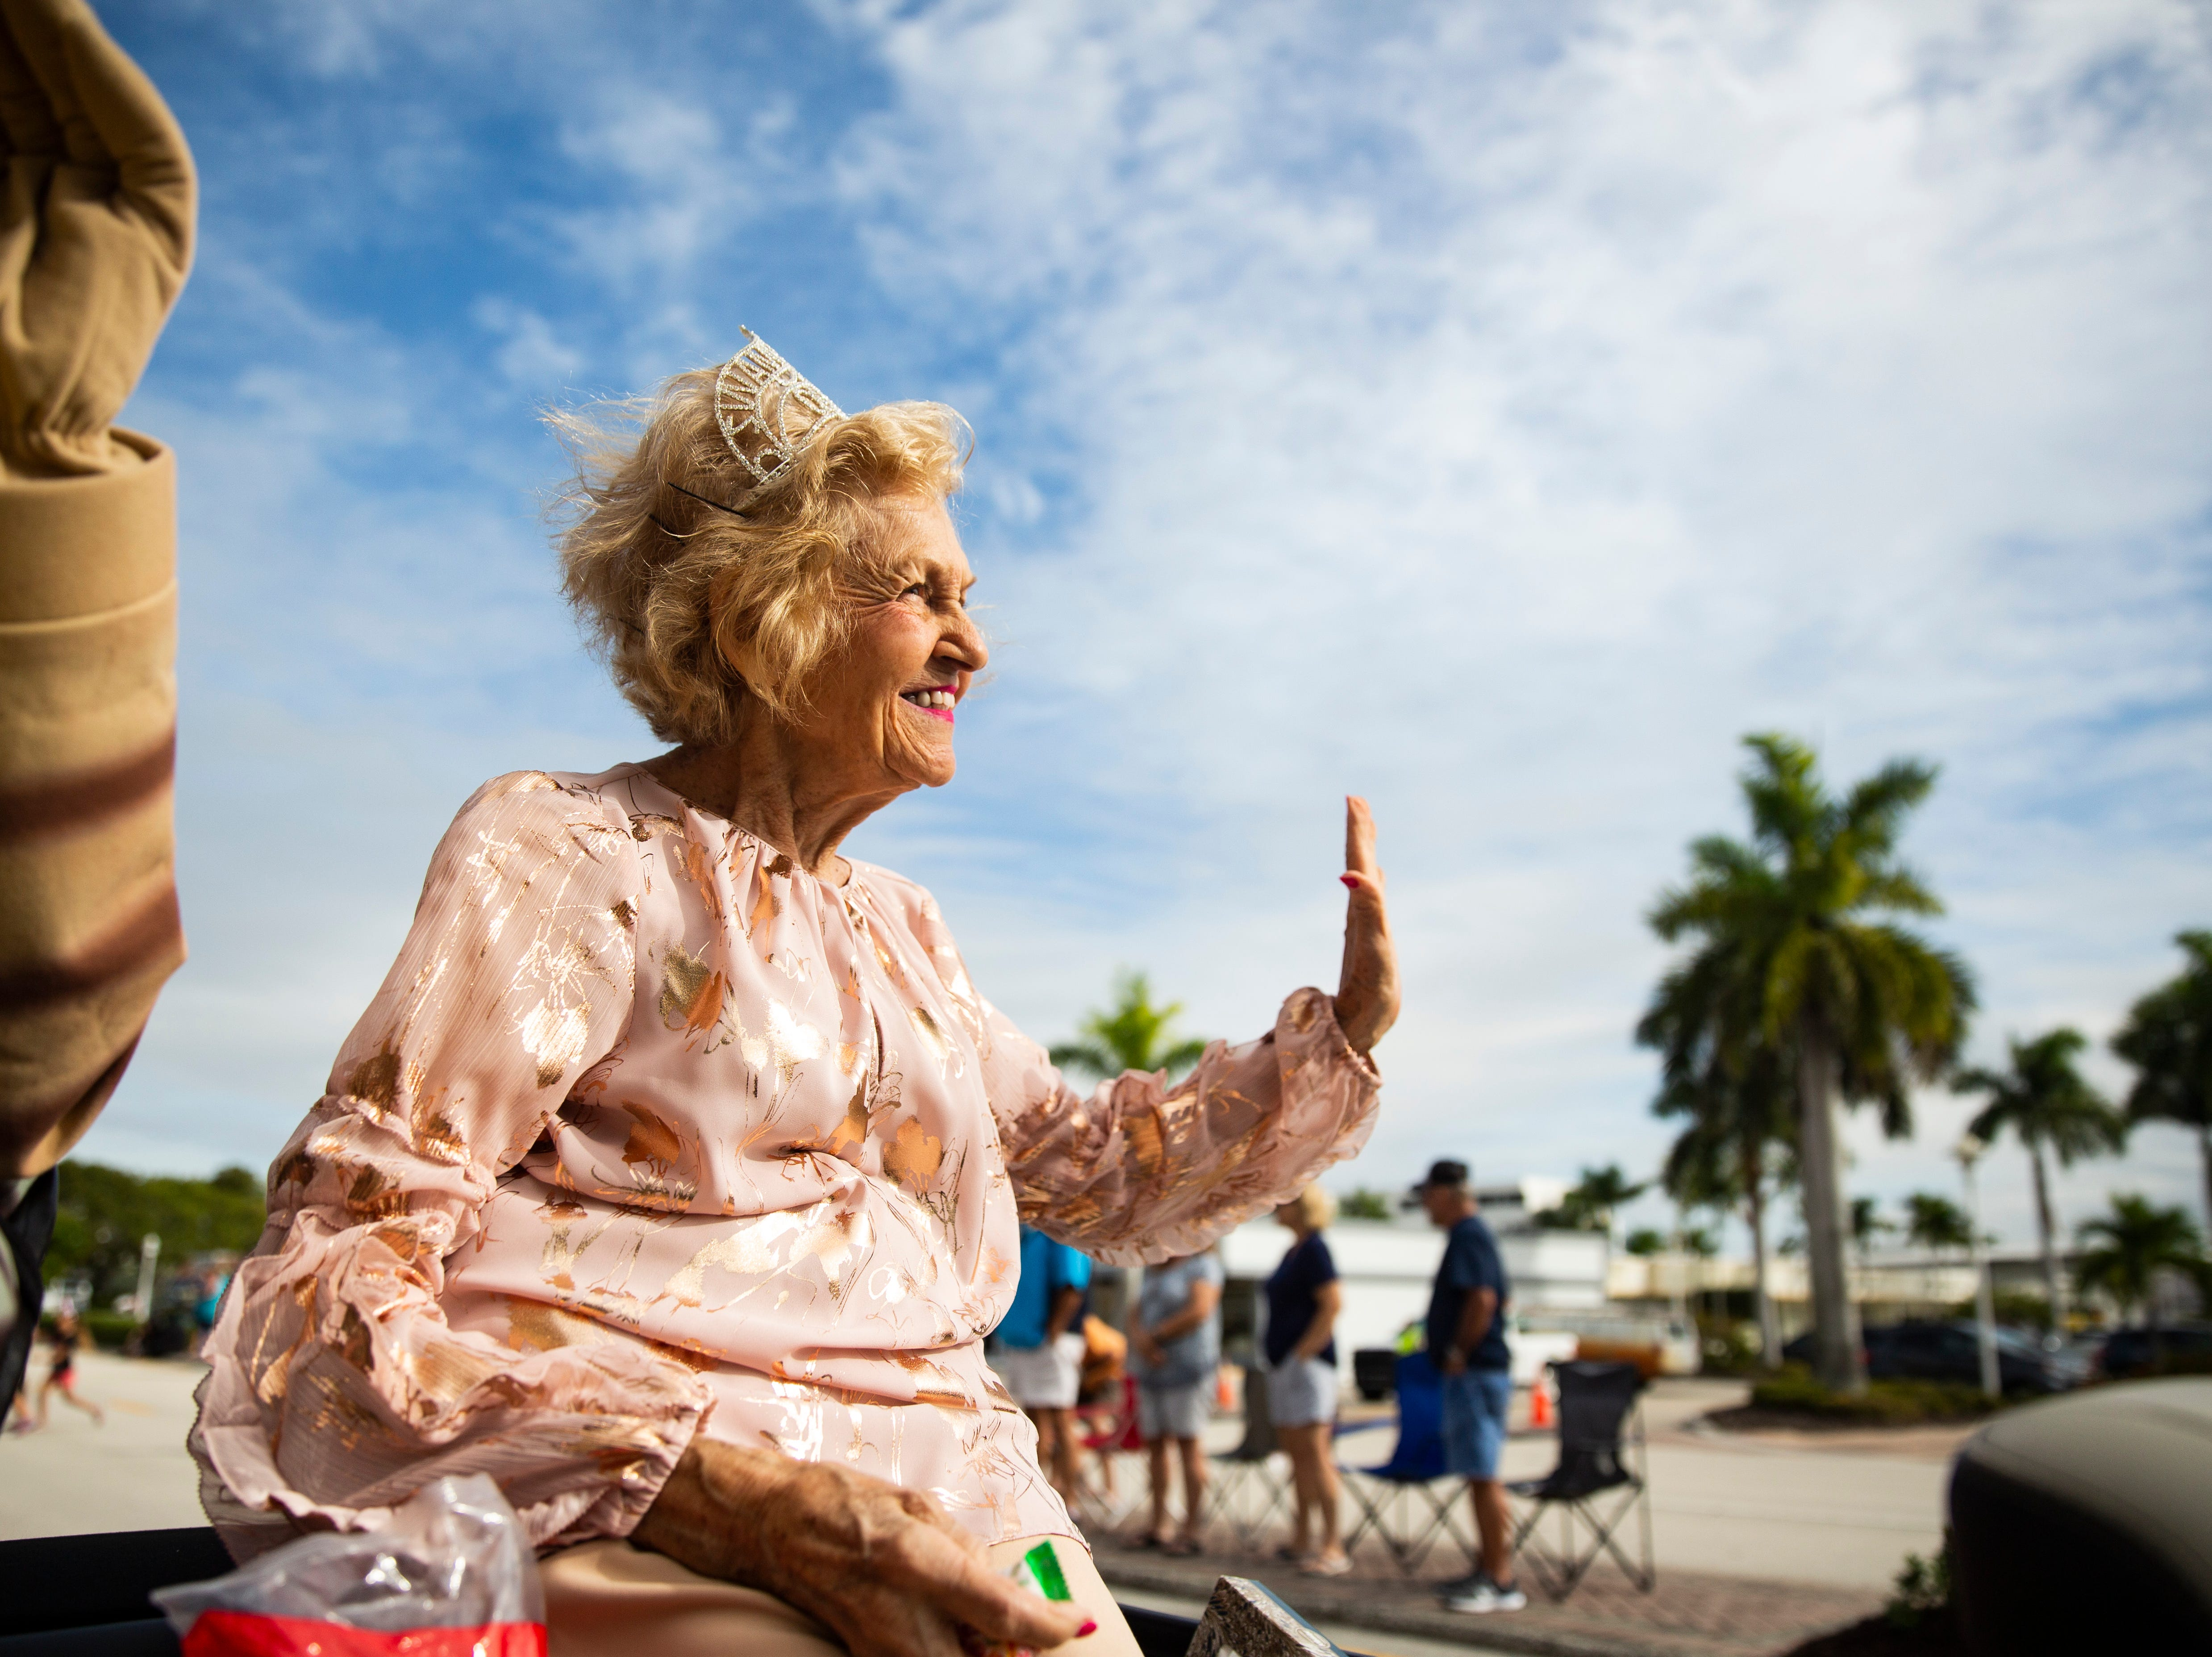 Dolly Scott, 83, waves to spectators during the 70th annual Swamp Buggy Parade Saturday morning, Nov. 3, 2018. She was crowned Swamp Buggy Queen in 1966. She's one of nearly 70 queens part of swamp buggy history. Saturday's parade featured past Swamp Buggy Queens, Naples High School marching band, racing buggies and Swampy - the race mascot, among other things.